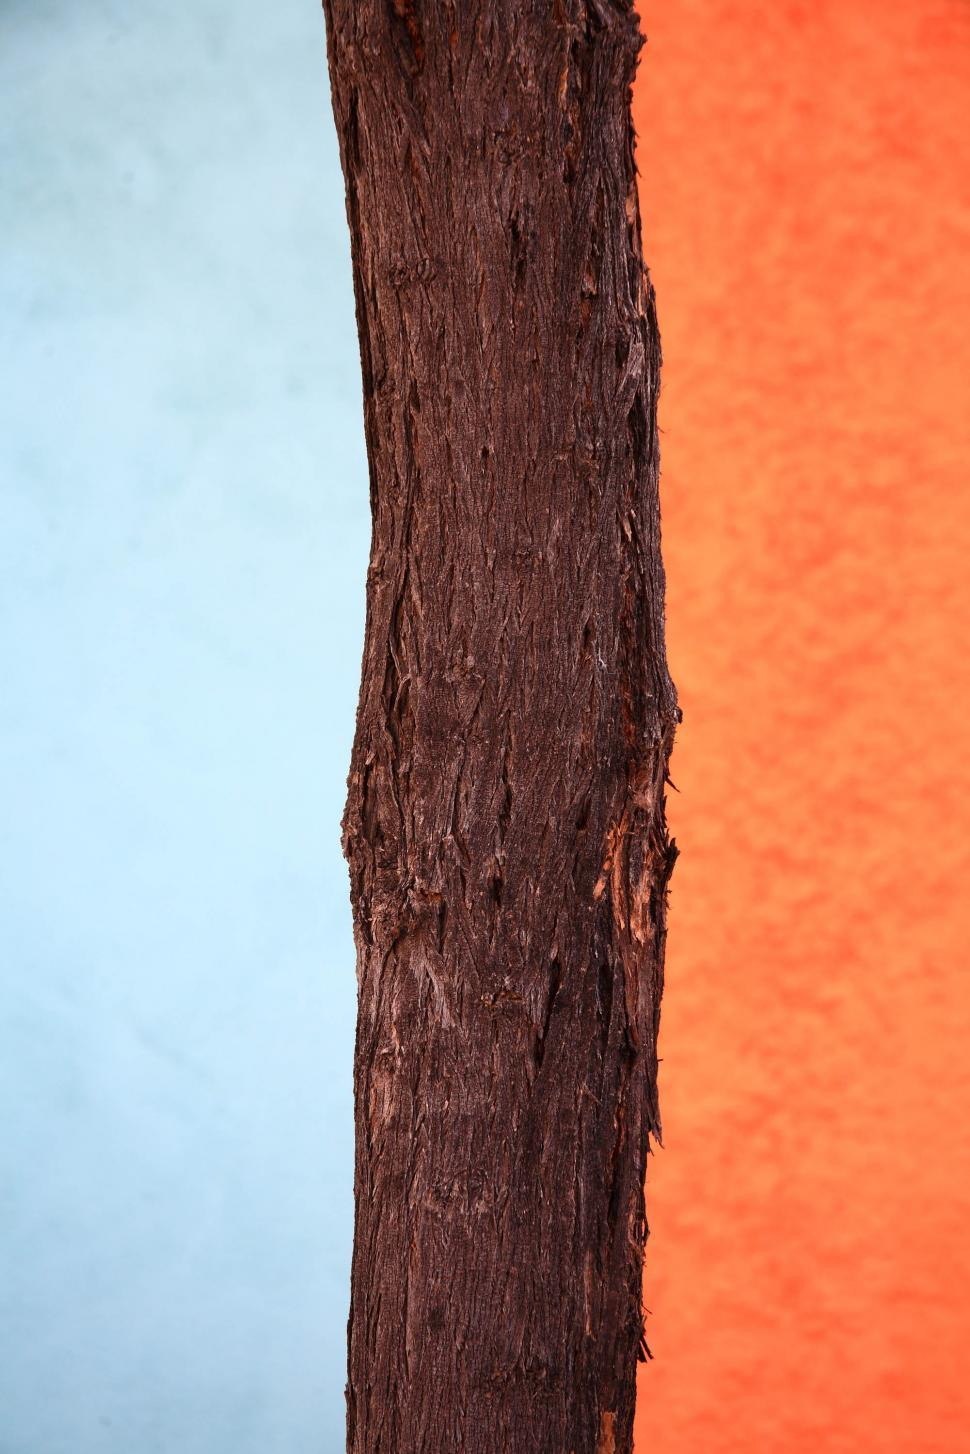 Download Free Stock HD Photo of tree over paint Online